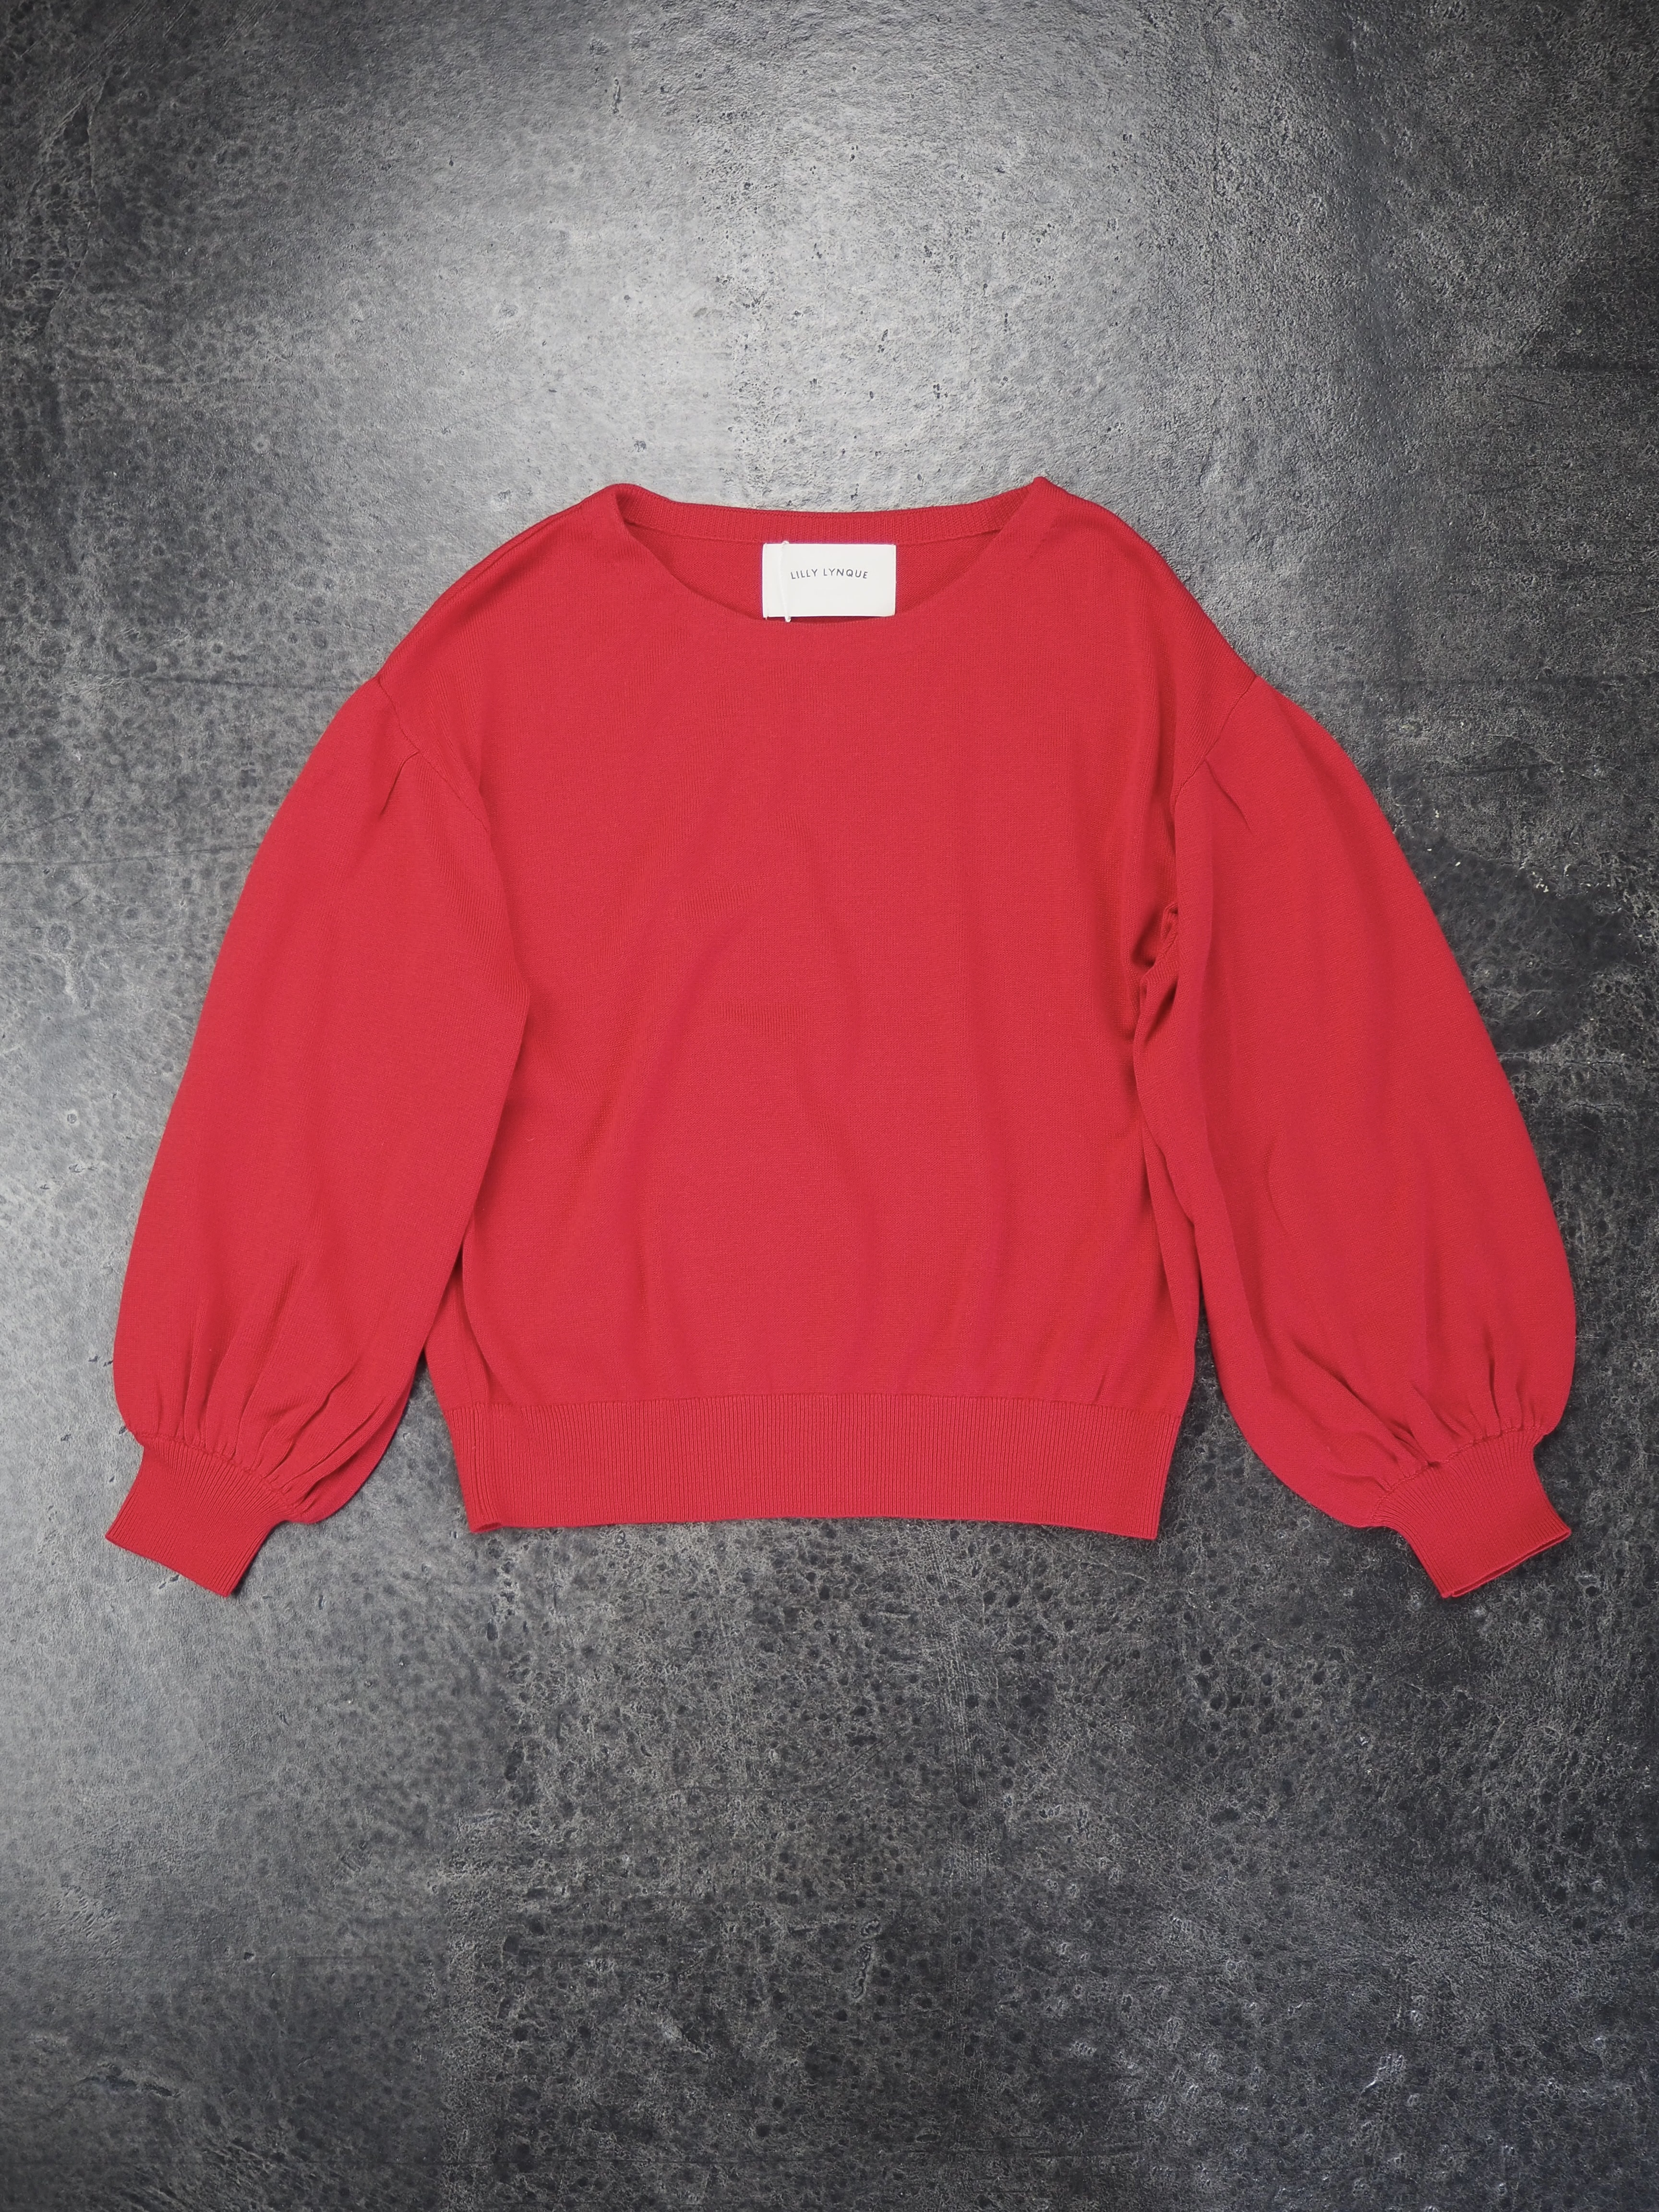 【LILLY LYNQUE】COTTON SILK CREW NECK PULLOVER